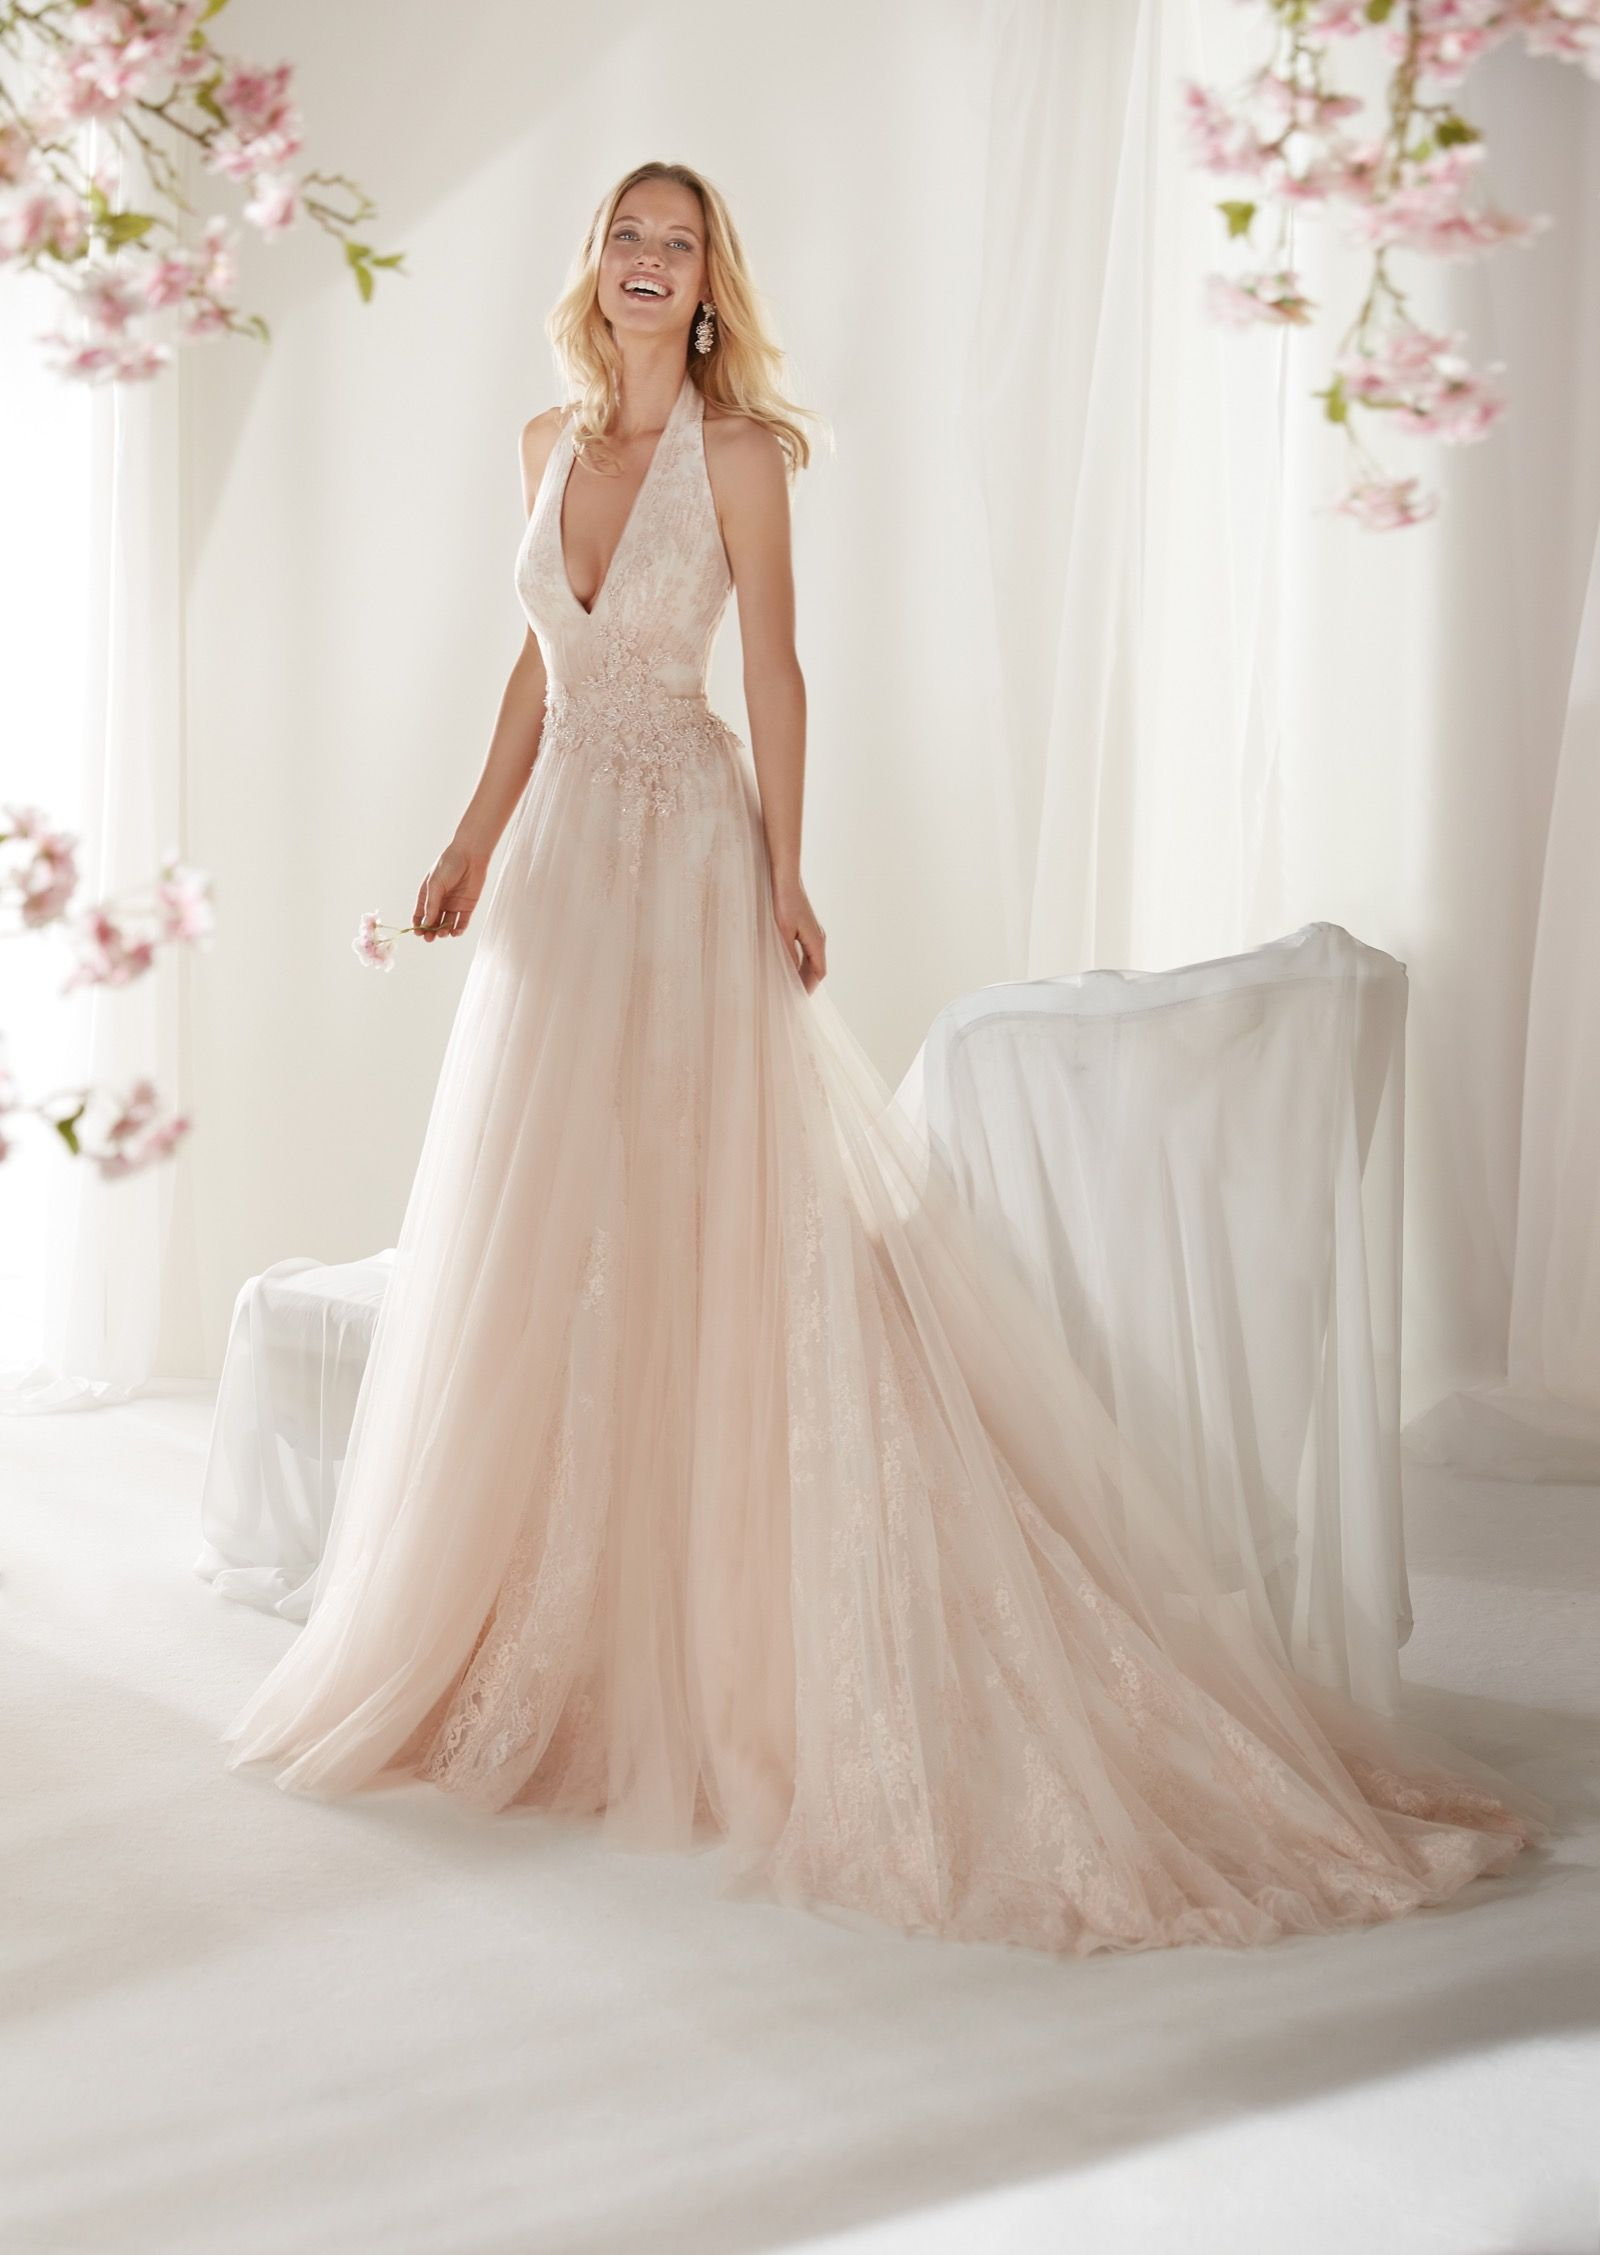 Coab19290 Colet 2019 Collection Wonderful Soft Line Light Pink Wedding Dress In Tulle Cha Light Pink Wedding Dress Wedding Dress Outfit A Line Wedding Dress